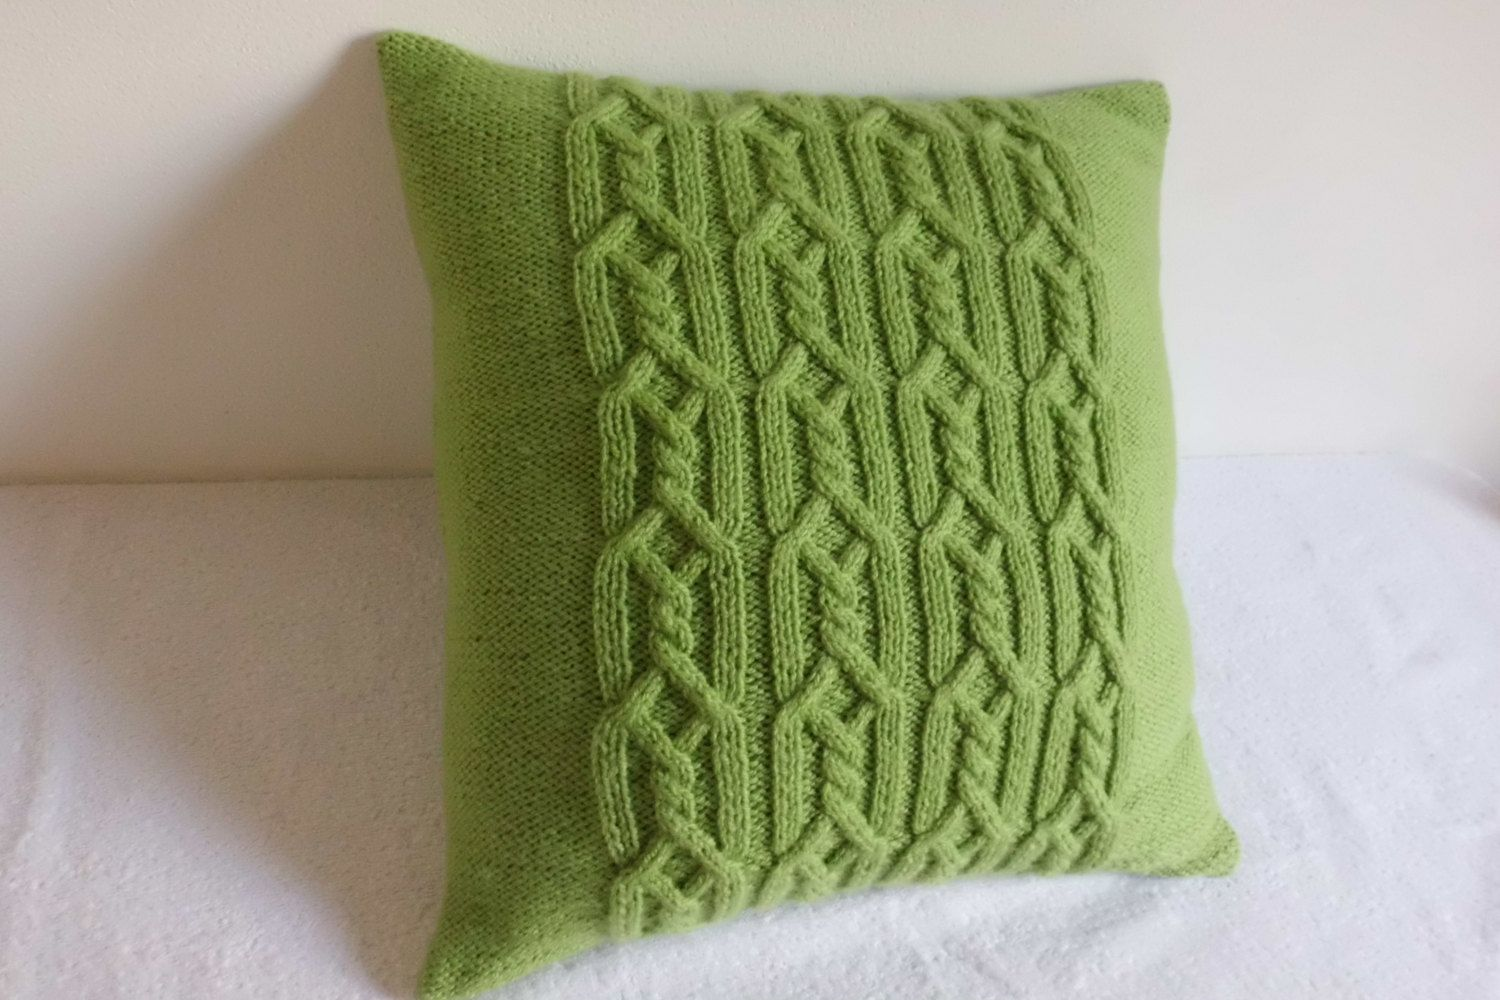 Decorative Greenery Knit Throw Pillow Spring Green Pillow Cover